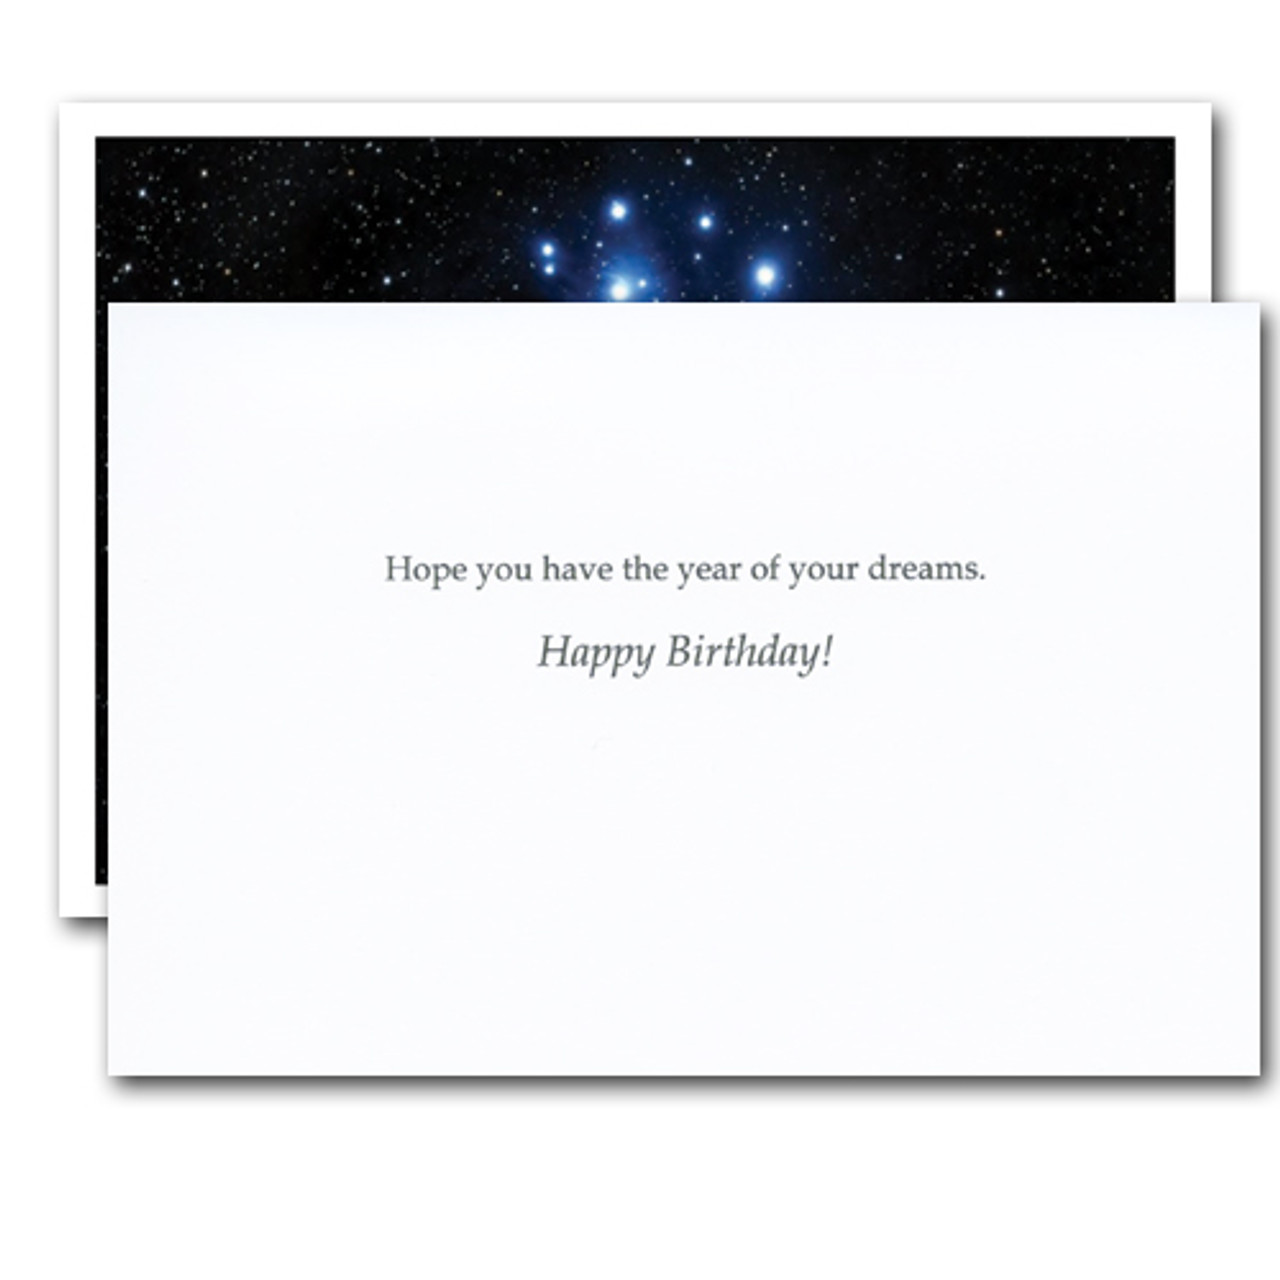 """Inside of van gogh quotation business birthday card has the words """"Hope you have the year of your dreams. Happy Birthday!"""""""